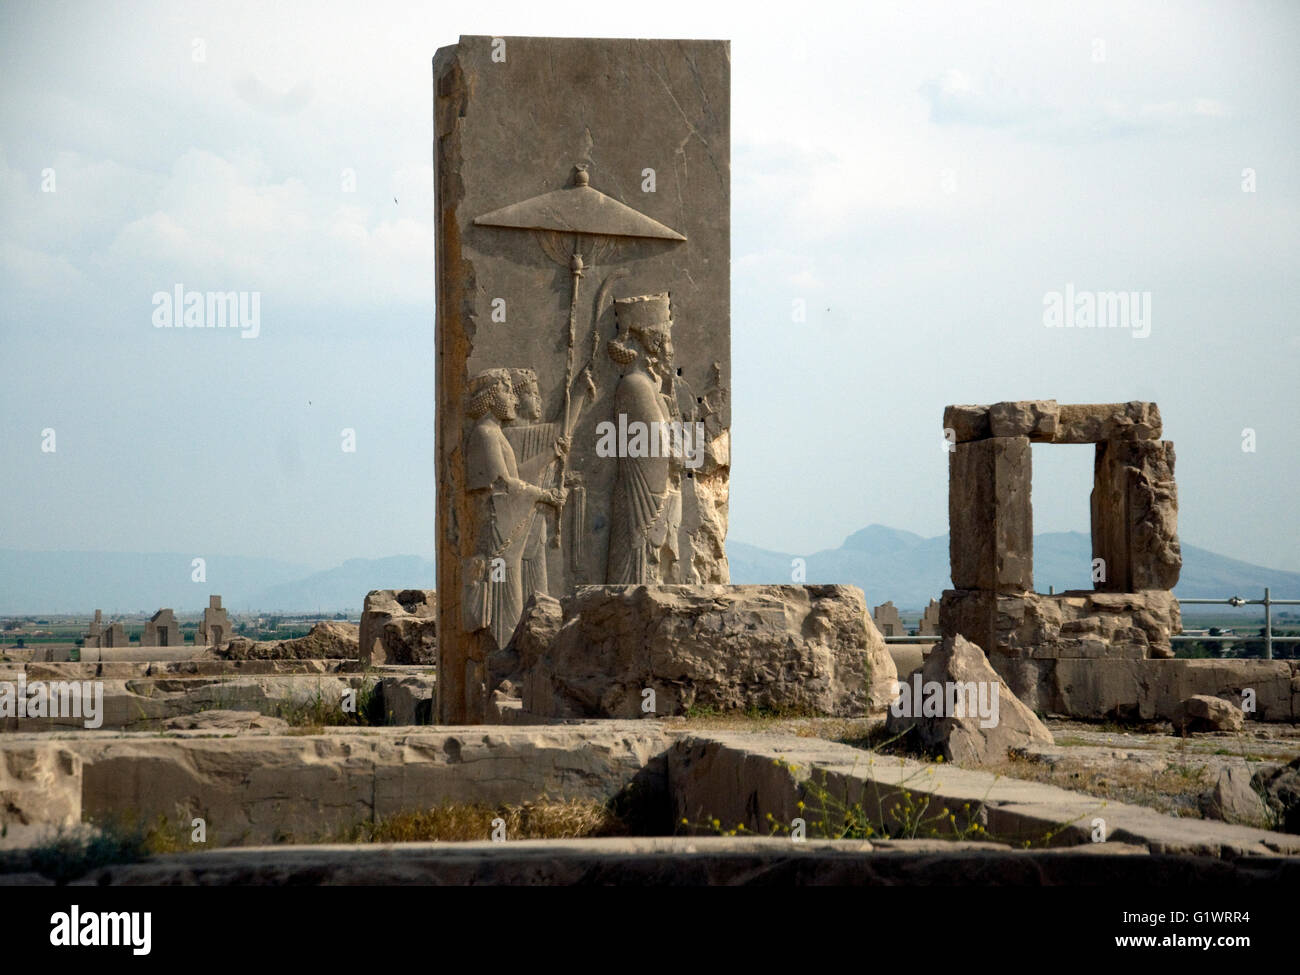 In Iran's grand ruins of a palace complex, Persepolis, a tall carved stone vividly shows ruler and ruled, perhaps - Stock Image